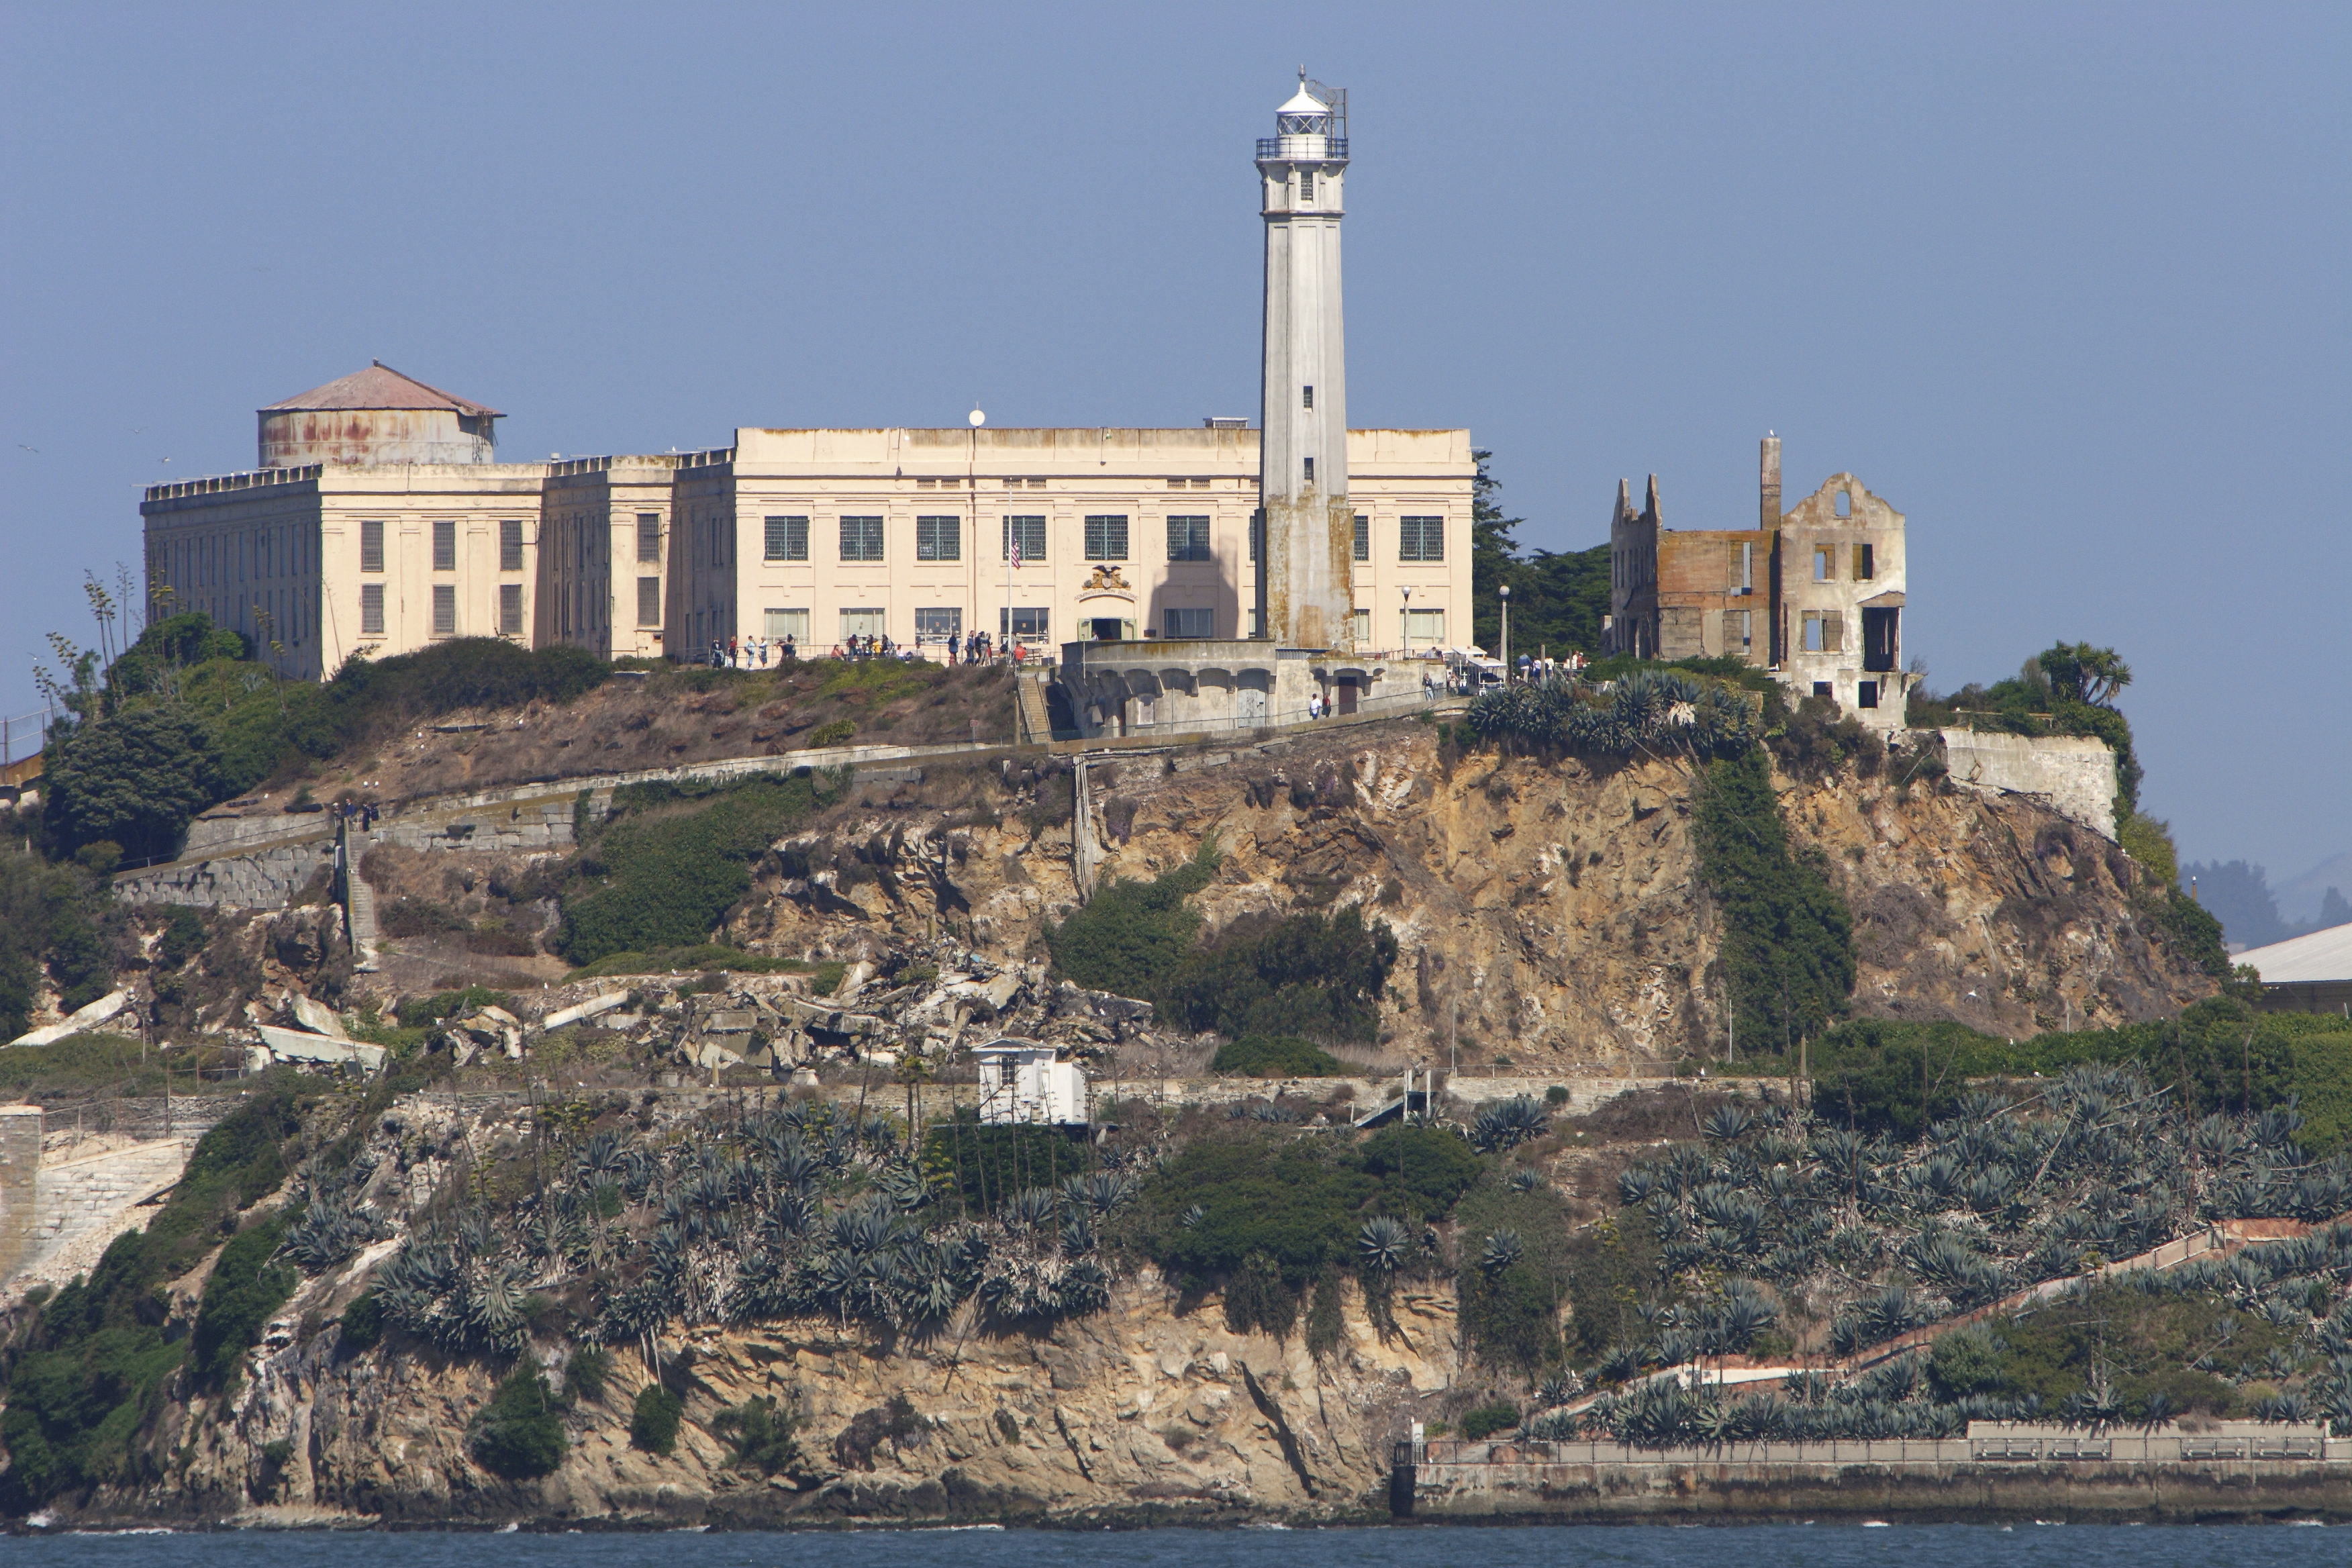 history of alcatraz A brief history of its infamous prisoners and what happened during the indian occupation of the island  the true history of alcatraz dates back thousands of years, when this small island stood on its own in the sf bay.